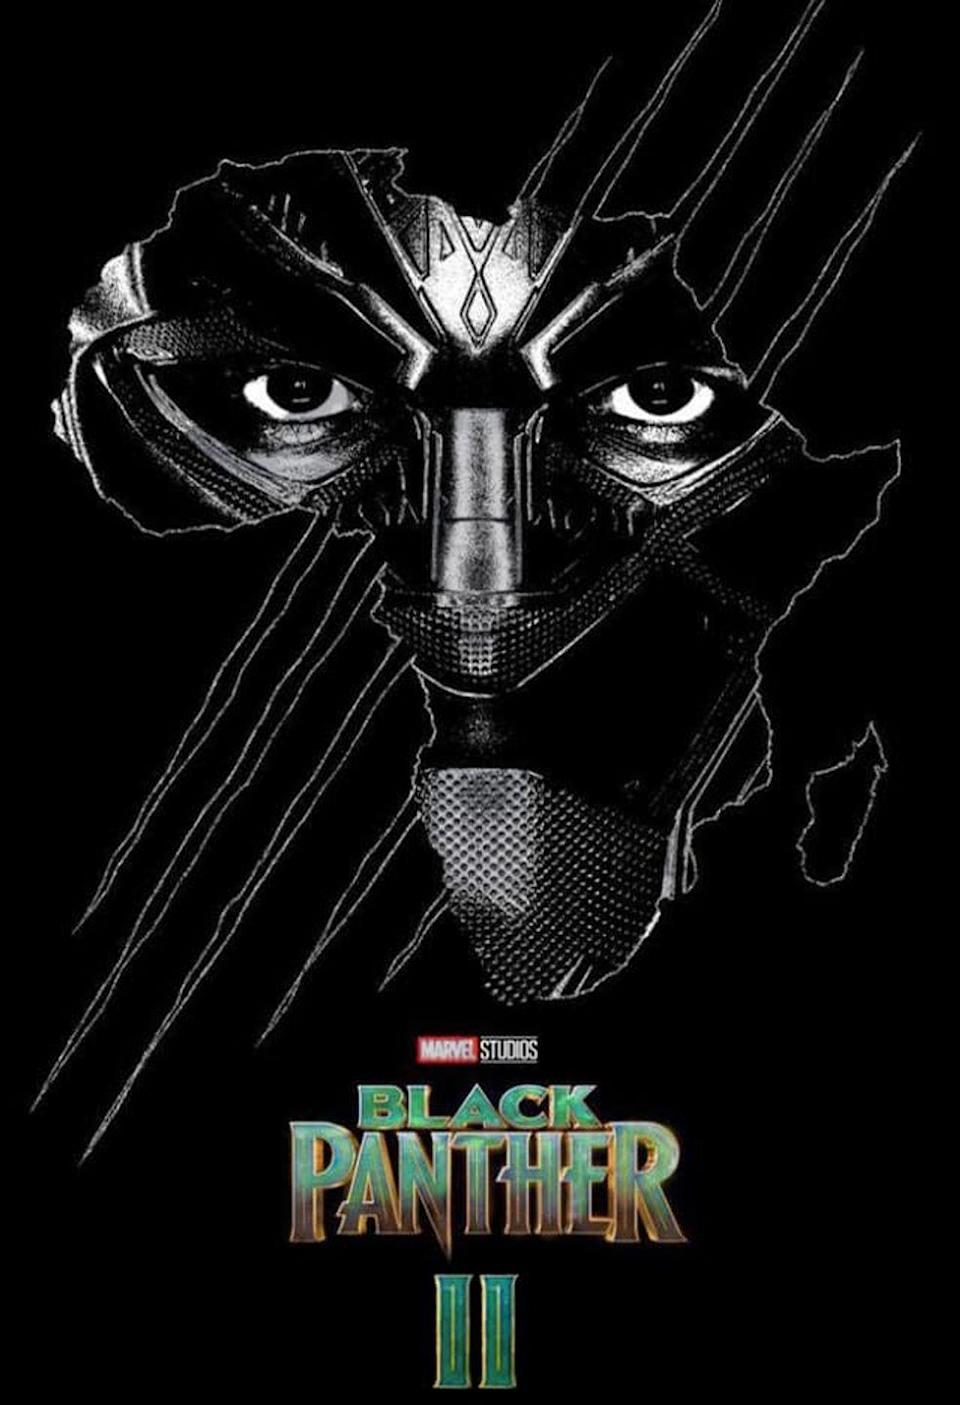 """<p>The future of the Black Panther franchise was in doubt since <a href=""""https://www.goodhousekeeping.com/life/a33838426/chadwick-boseman-dead-black-panther/"""" rel=""""nofollow noopener"""" target=""""_blank"""" data-ylk=""""slk:Chadwick Boseman's unexpected death"""" class=""""link rapid-noclick-resp"""">Chadwick Boseman's unexpected death</a> at age 43 from colon cancer in August 2020. But Disney announced that his death will not be the end of Wakanda's story. This sequel, still directed by Ryan Coogler, is set to premiere July 8, 2022.</p>"""